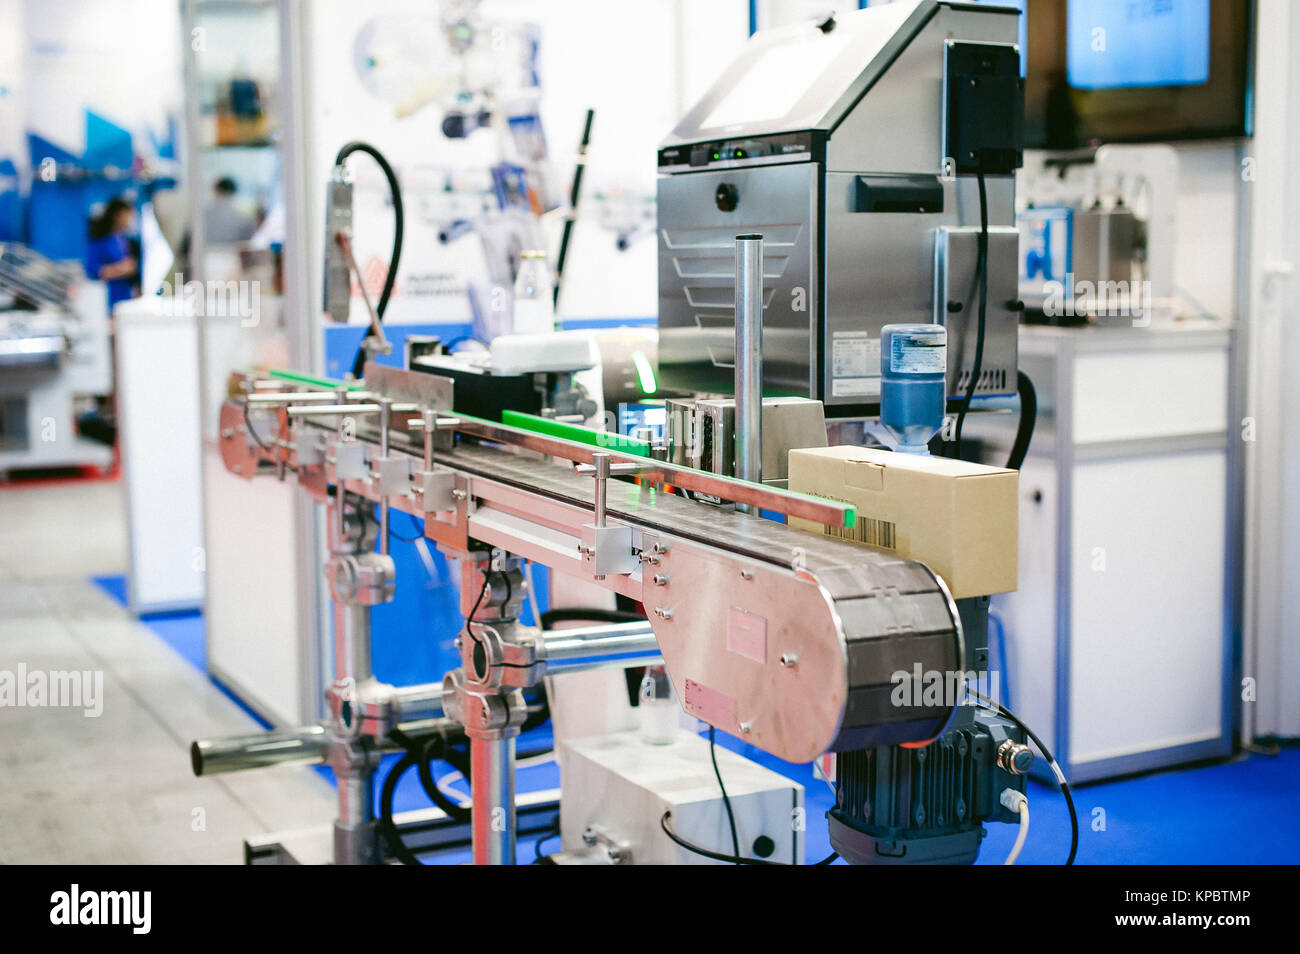 machines and mechanisms of production laboratories - Stock Image